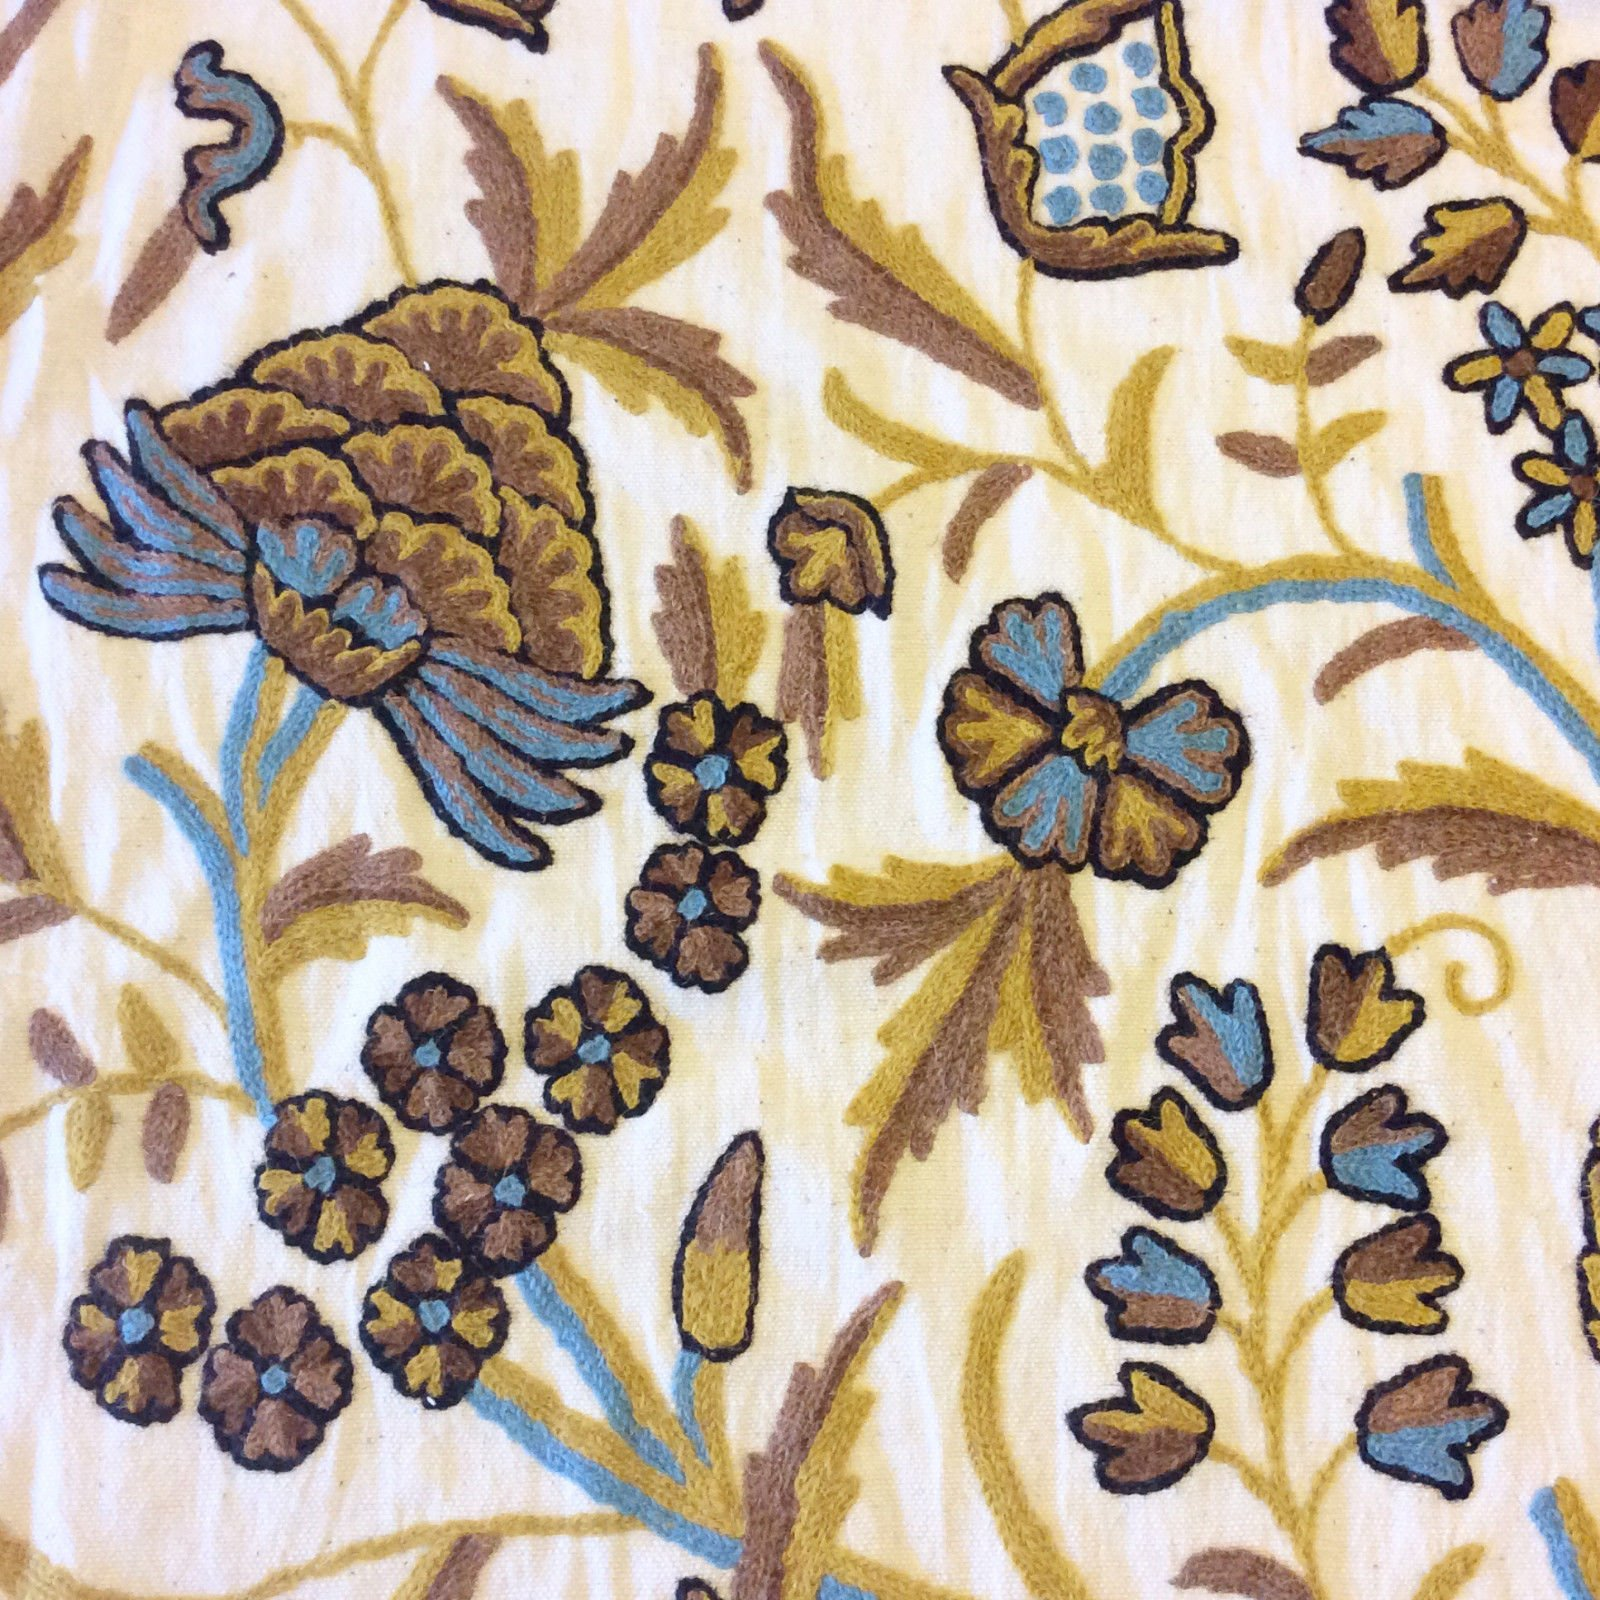 Crewel Exquisite Chainstitch HAND Embroidered Cotton Crewel Floral Home  Decor Fabric NL241